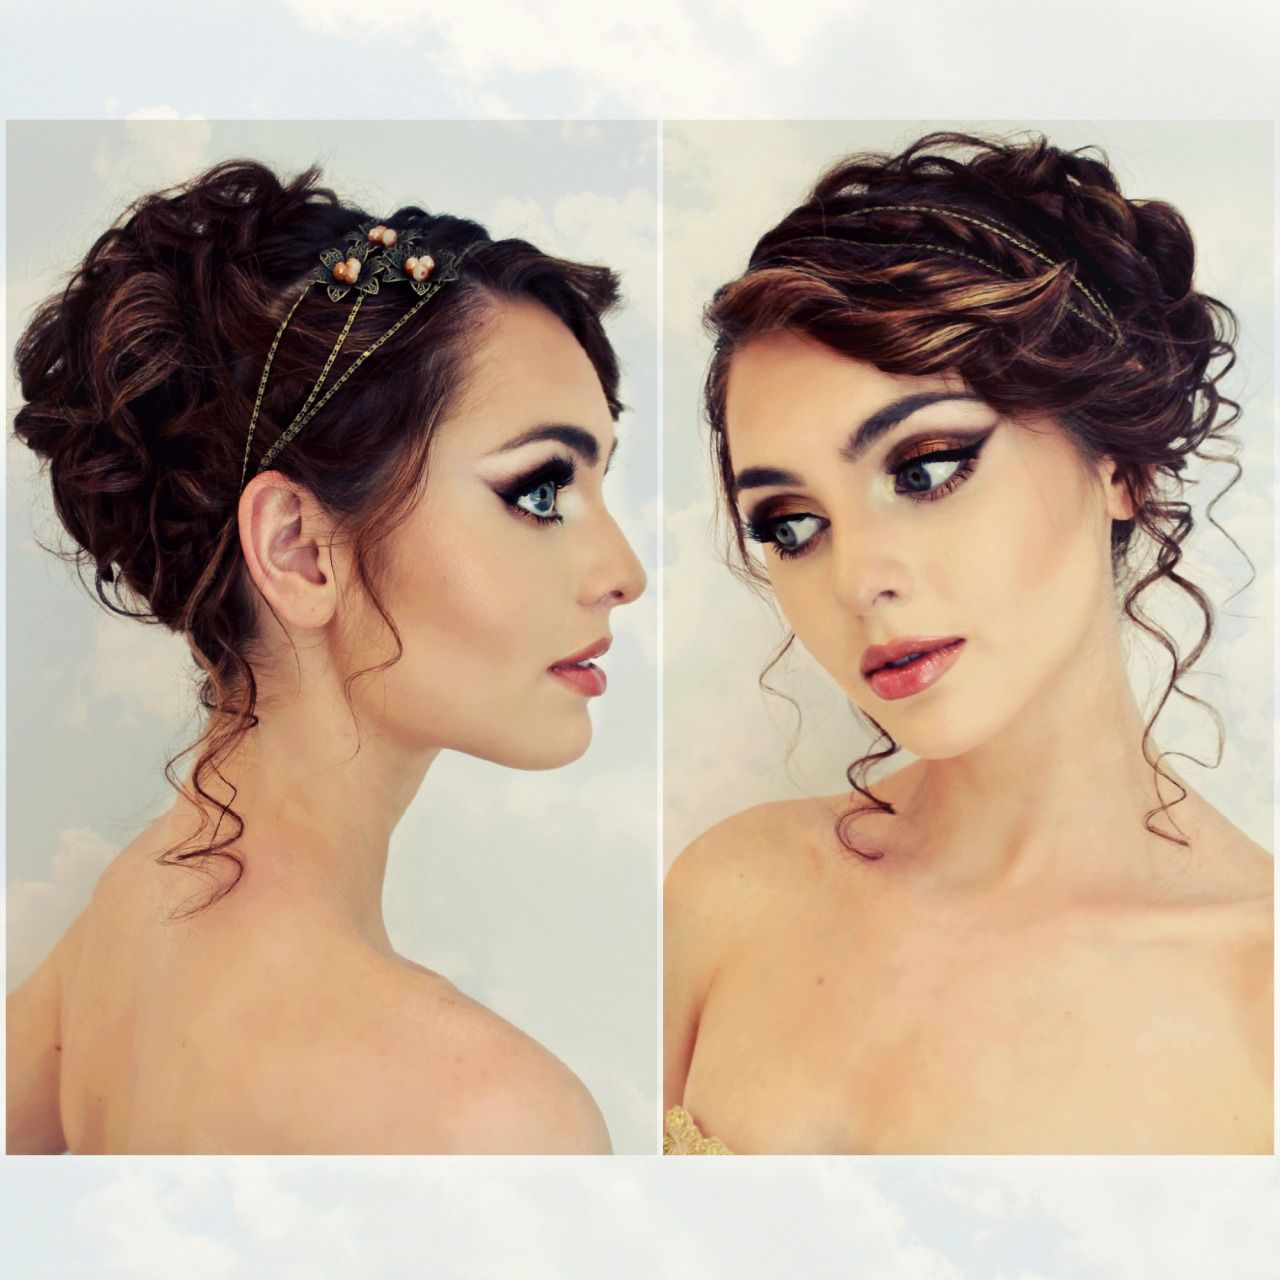 Jackie Wyers Greek Goddess Updo Bronze Makeup Greek Goddess Hairstyles Greek Hair Goddess Hairstyles